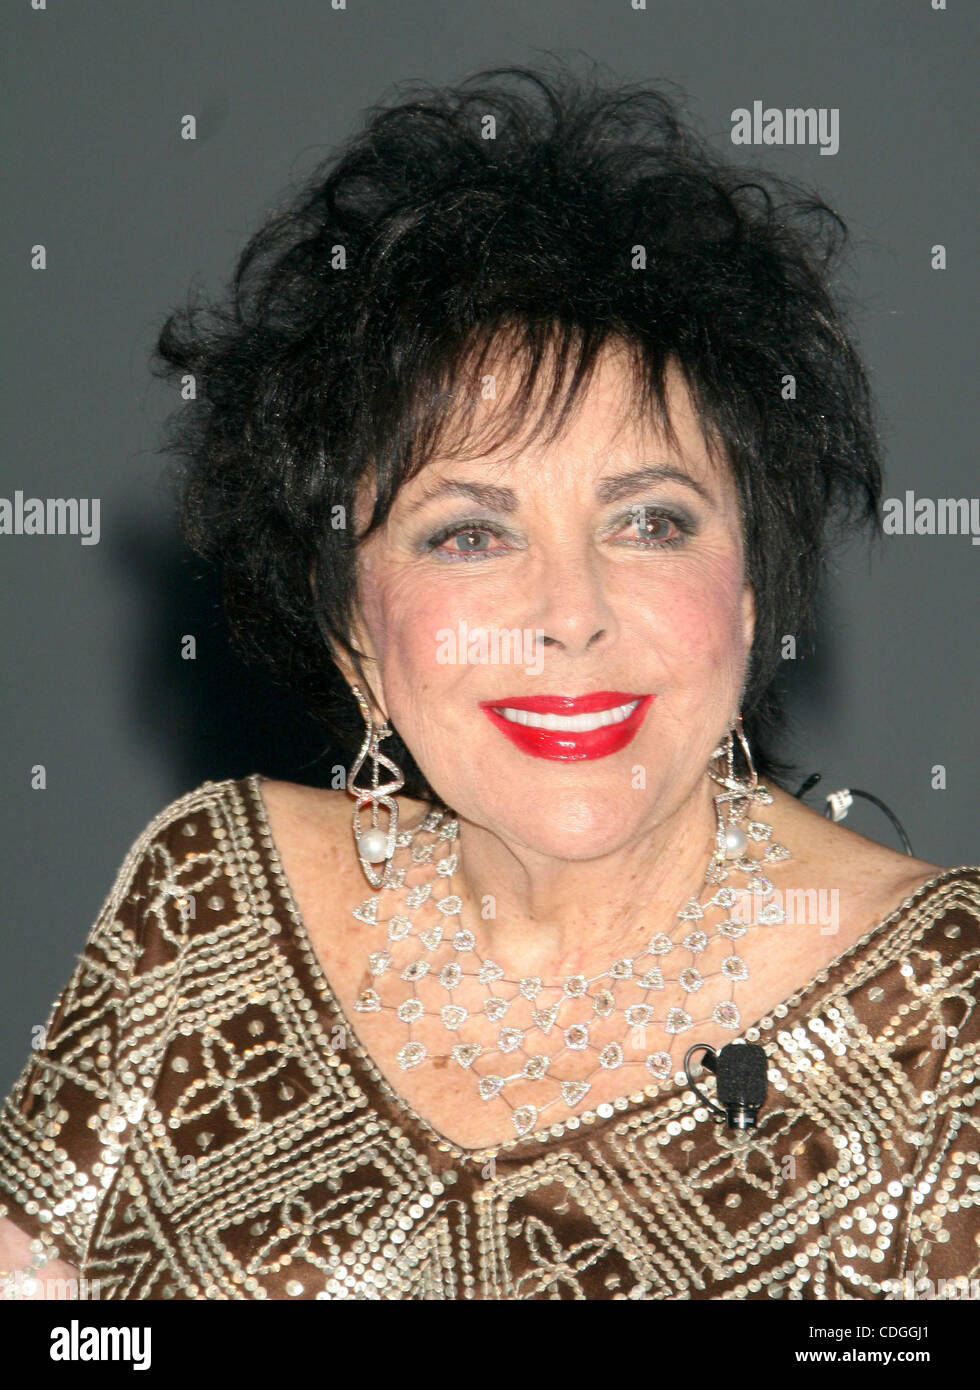 FILE PHOTO - ELIZABETH TAYLOR, 79, the Oscar-winning movie goddess and pioneering AIDS activist whose off-screen - Stock Image